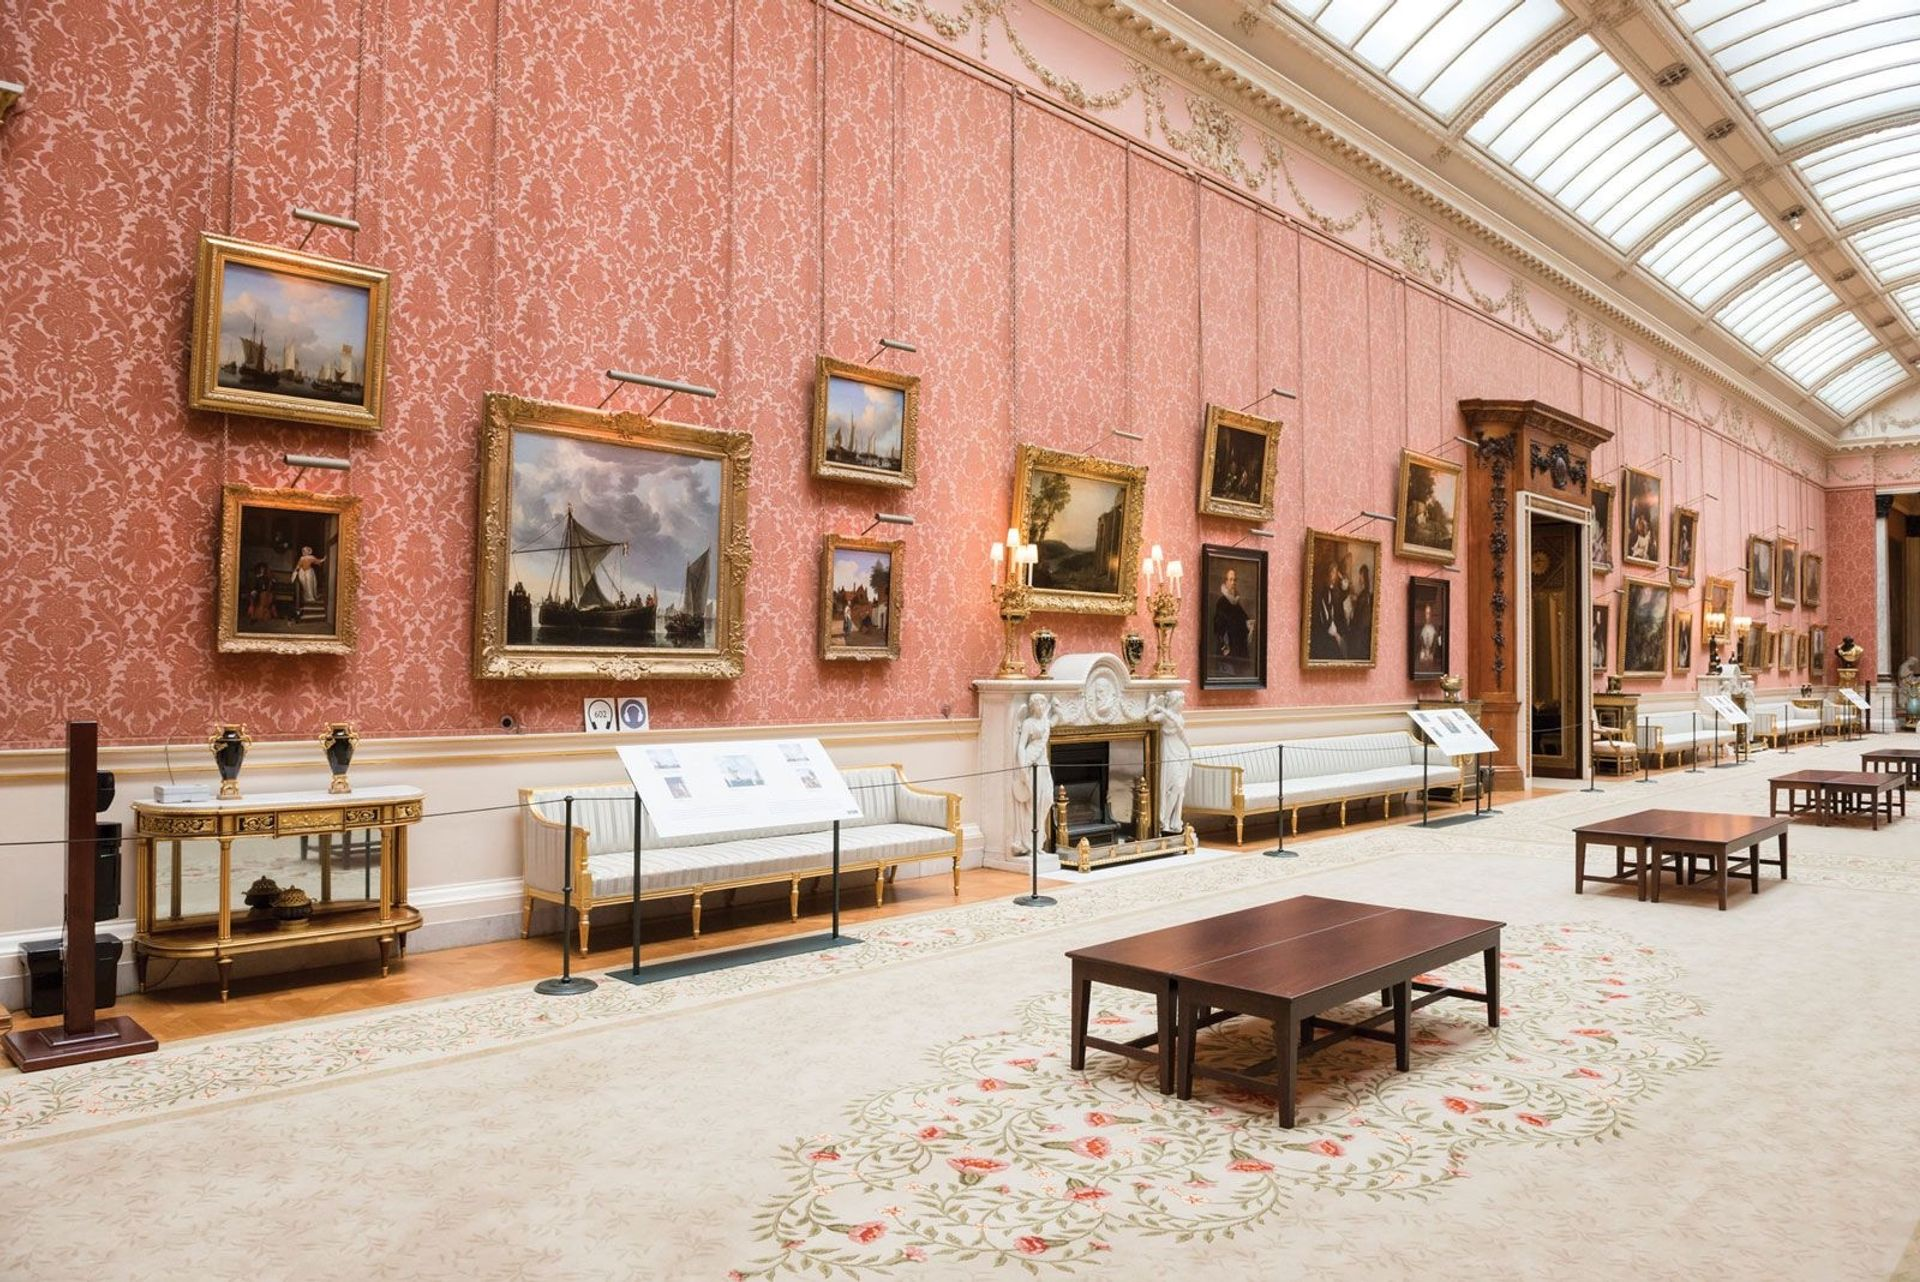 The Picture Gallery at Buckingham Palace (currently closed for renovation work) © Her Majesty Queen Elizabeth II 2020